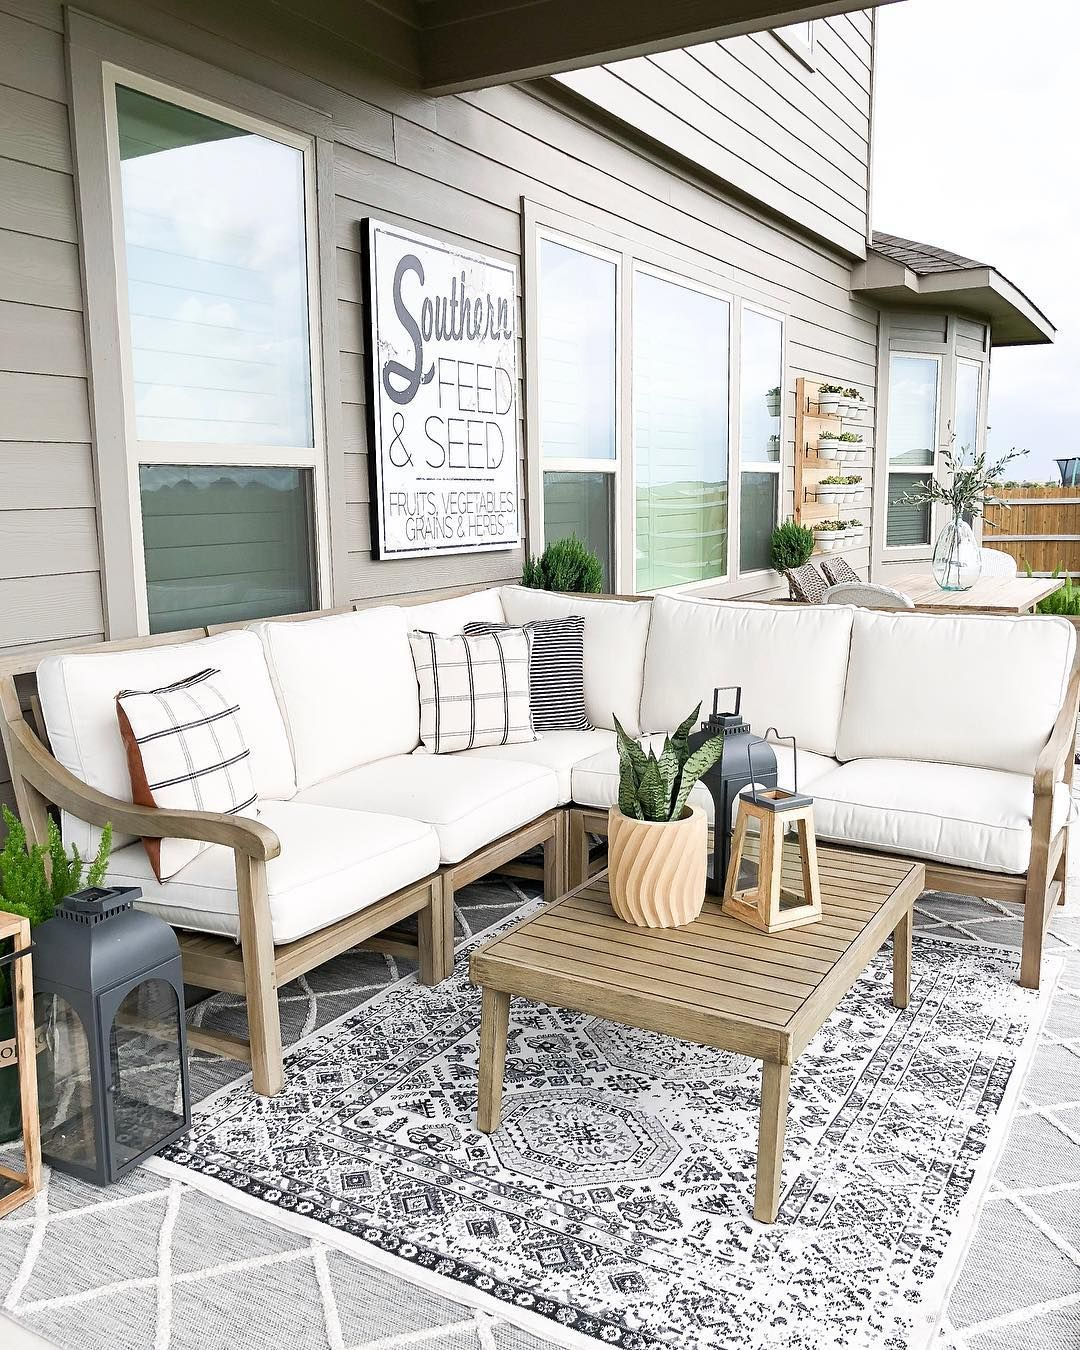 Pin By Maria Warren On Patio And Outdoor Small Outdoor Patios Outdoor Patio Decor Outdoor Patio Furniture